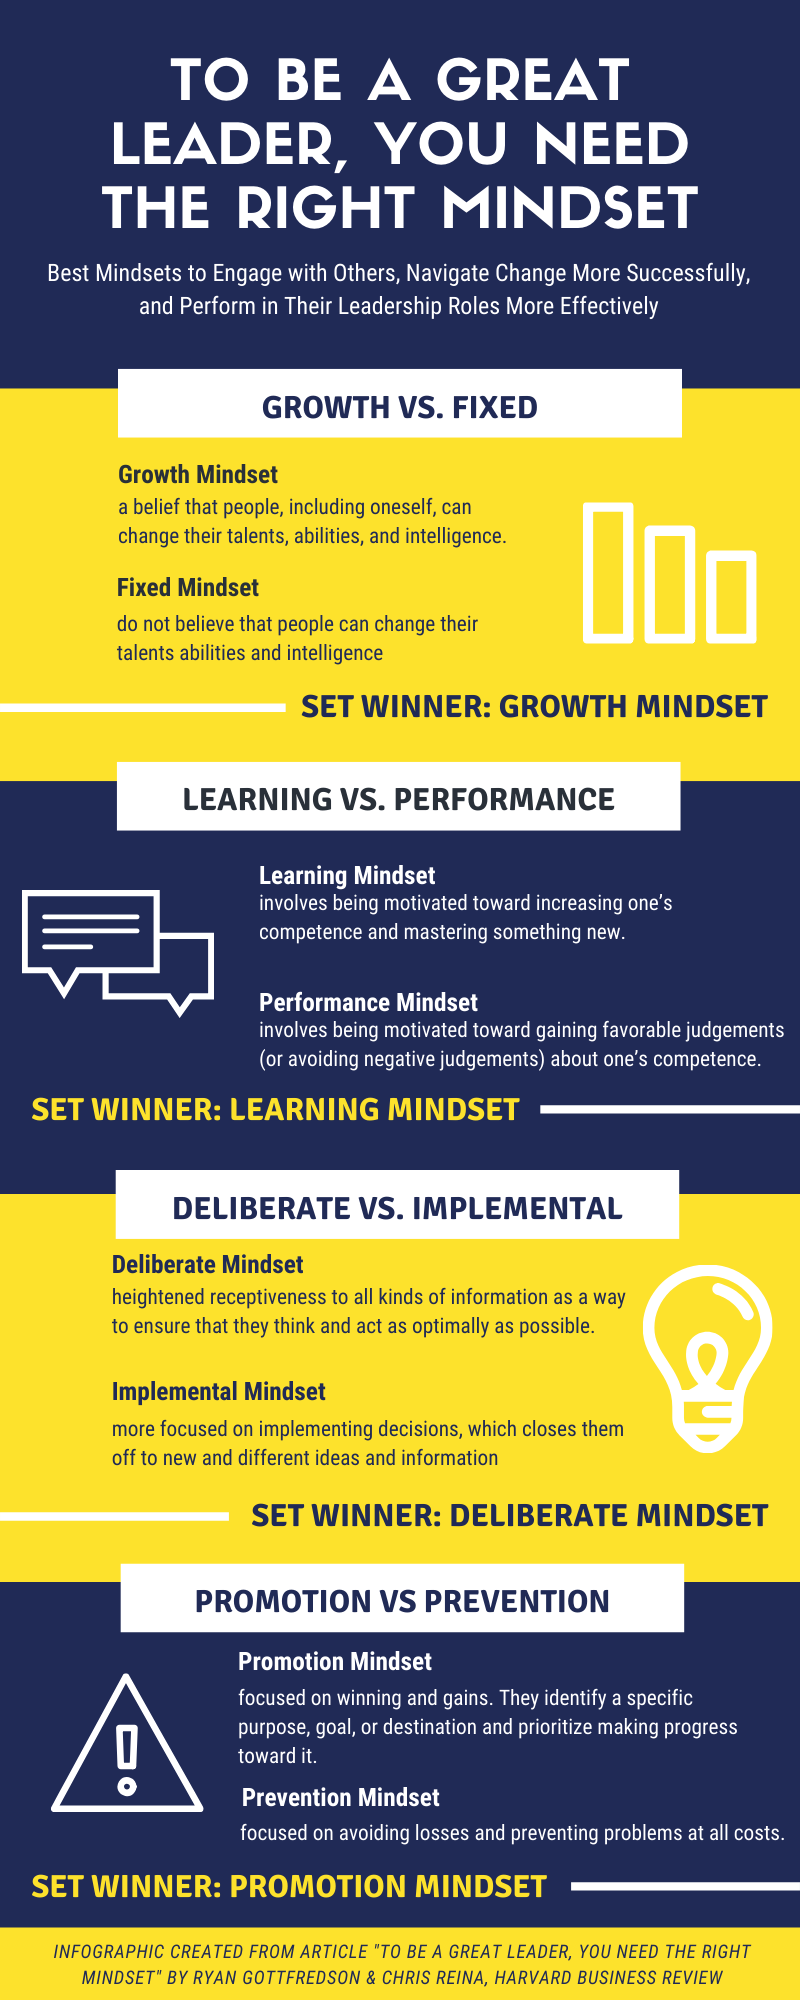 To Be A Great Leader, You Need The Right Mindset